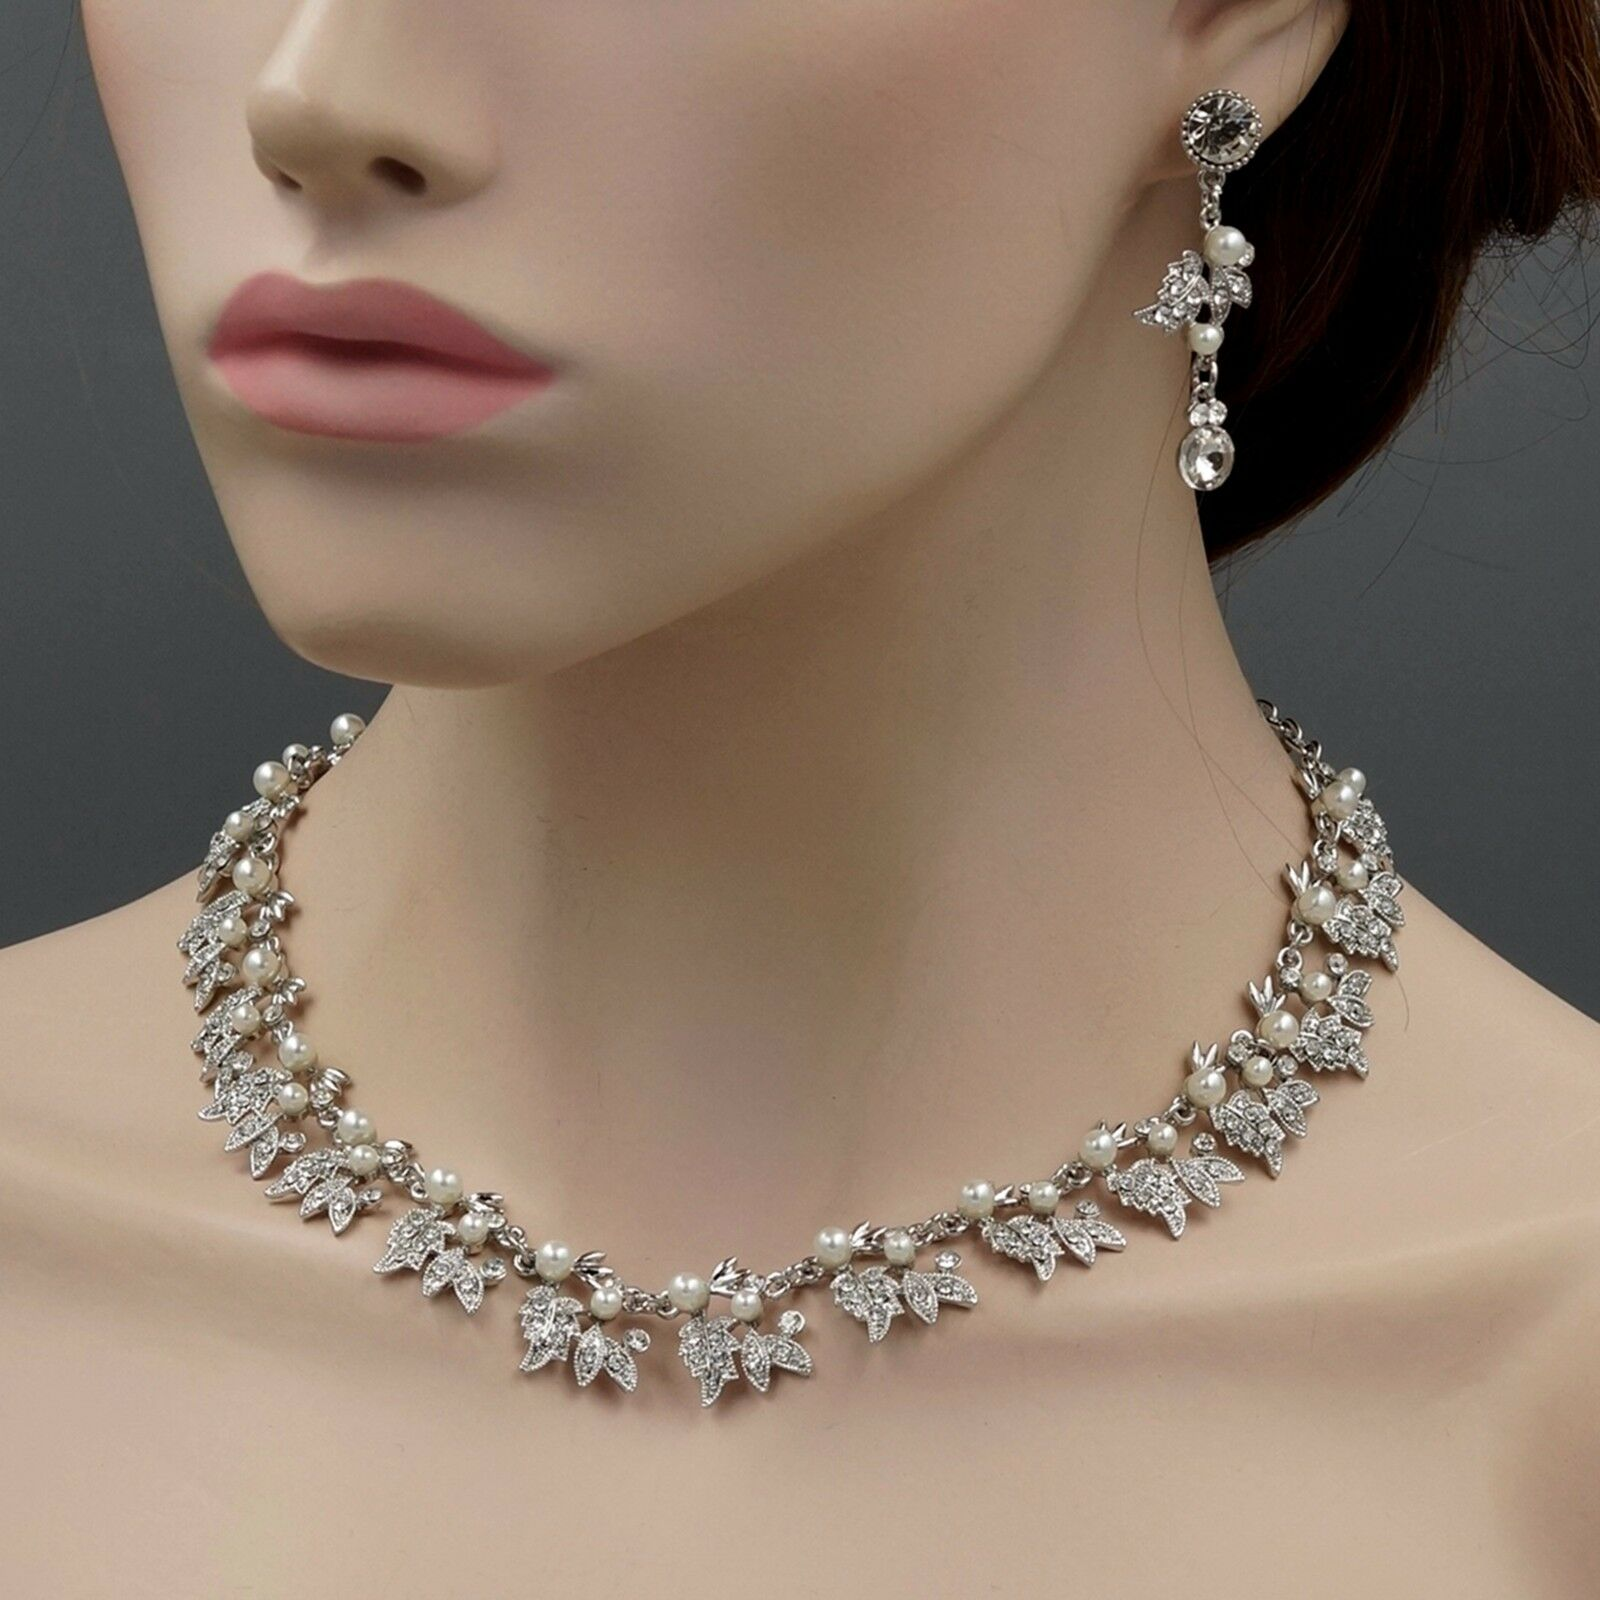 Rhodium Plated Pearl Crystal Necklace Earrings Bridal